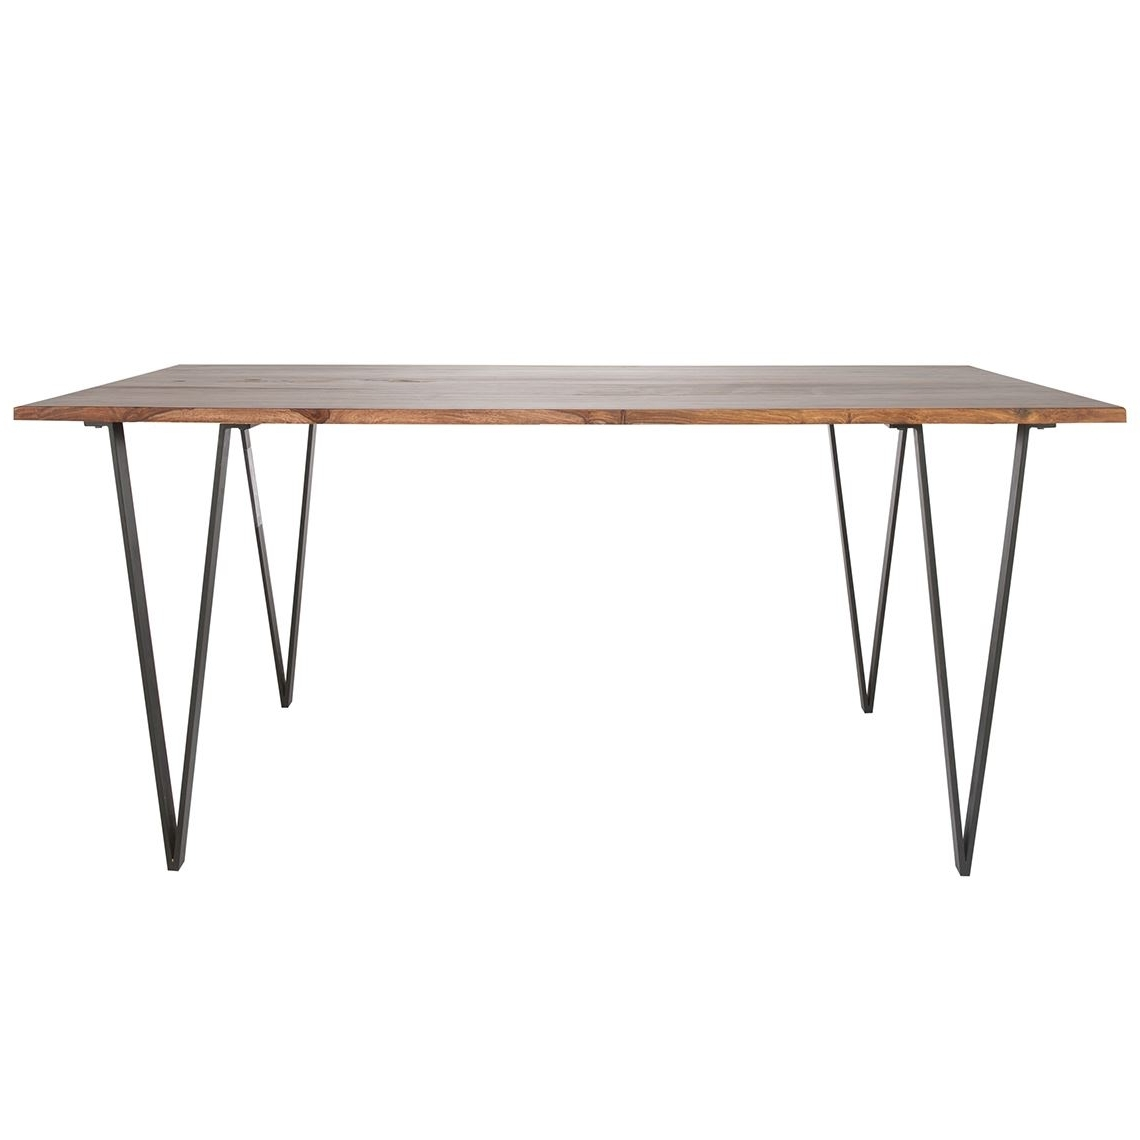 Widely used Wyatt Dining Tables with regard to Wyatt Dining Table